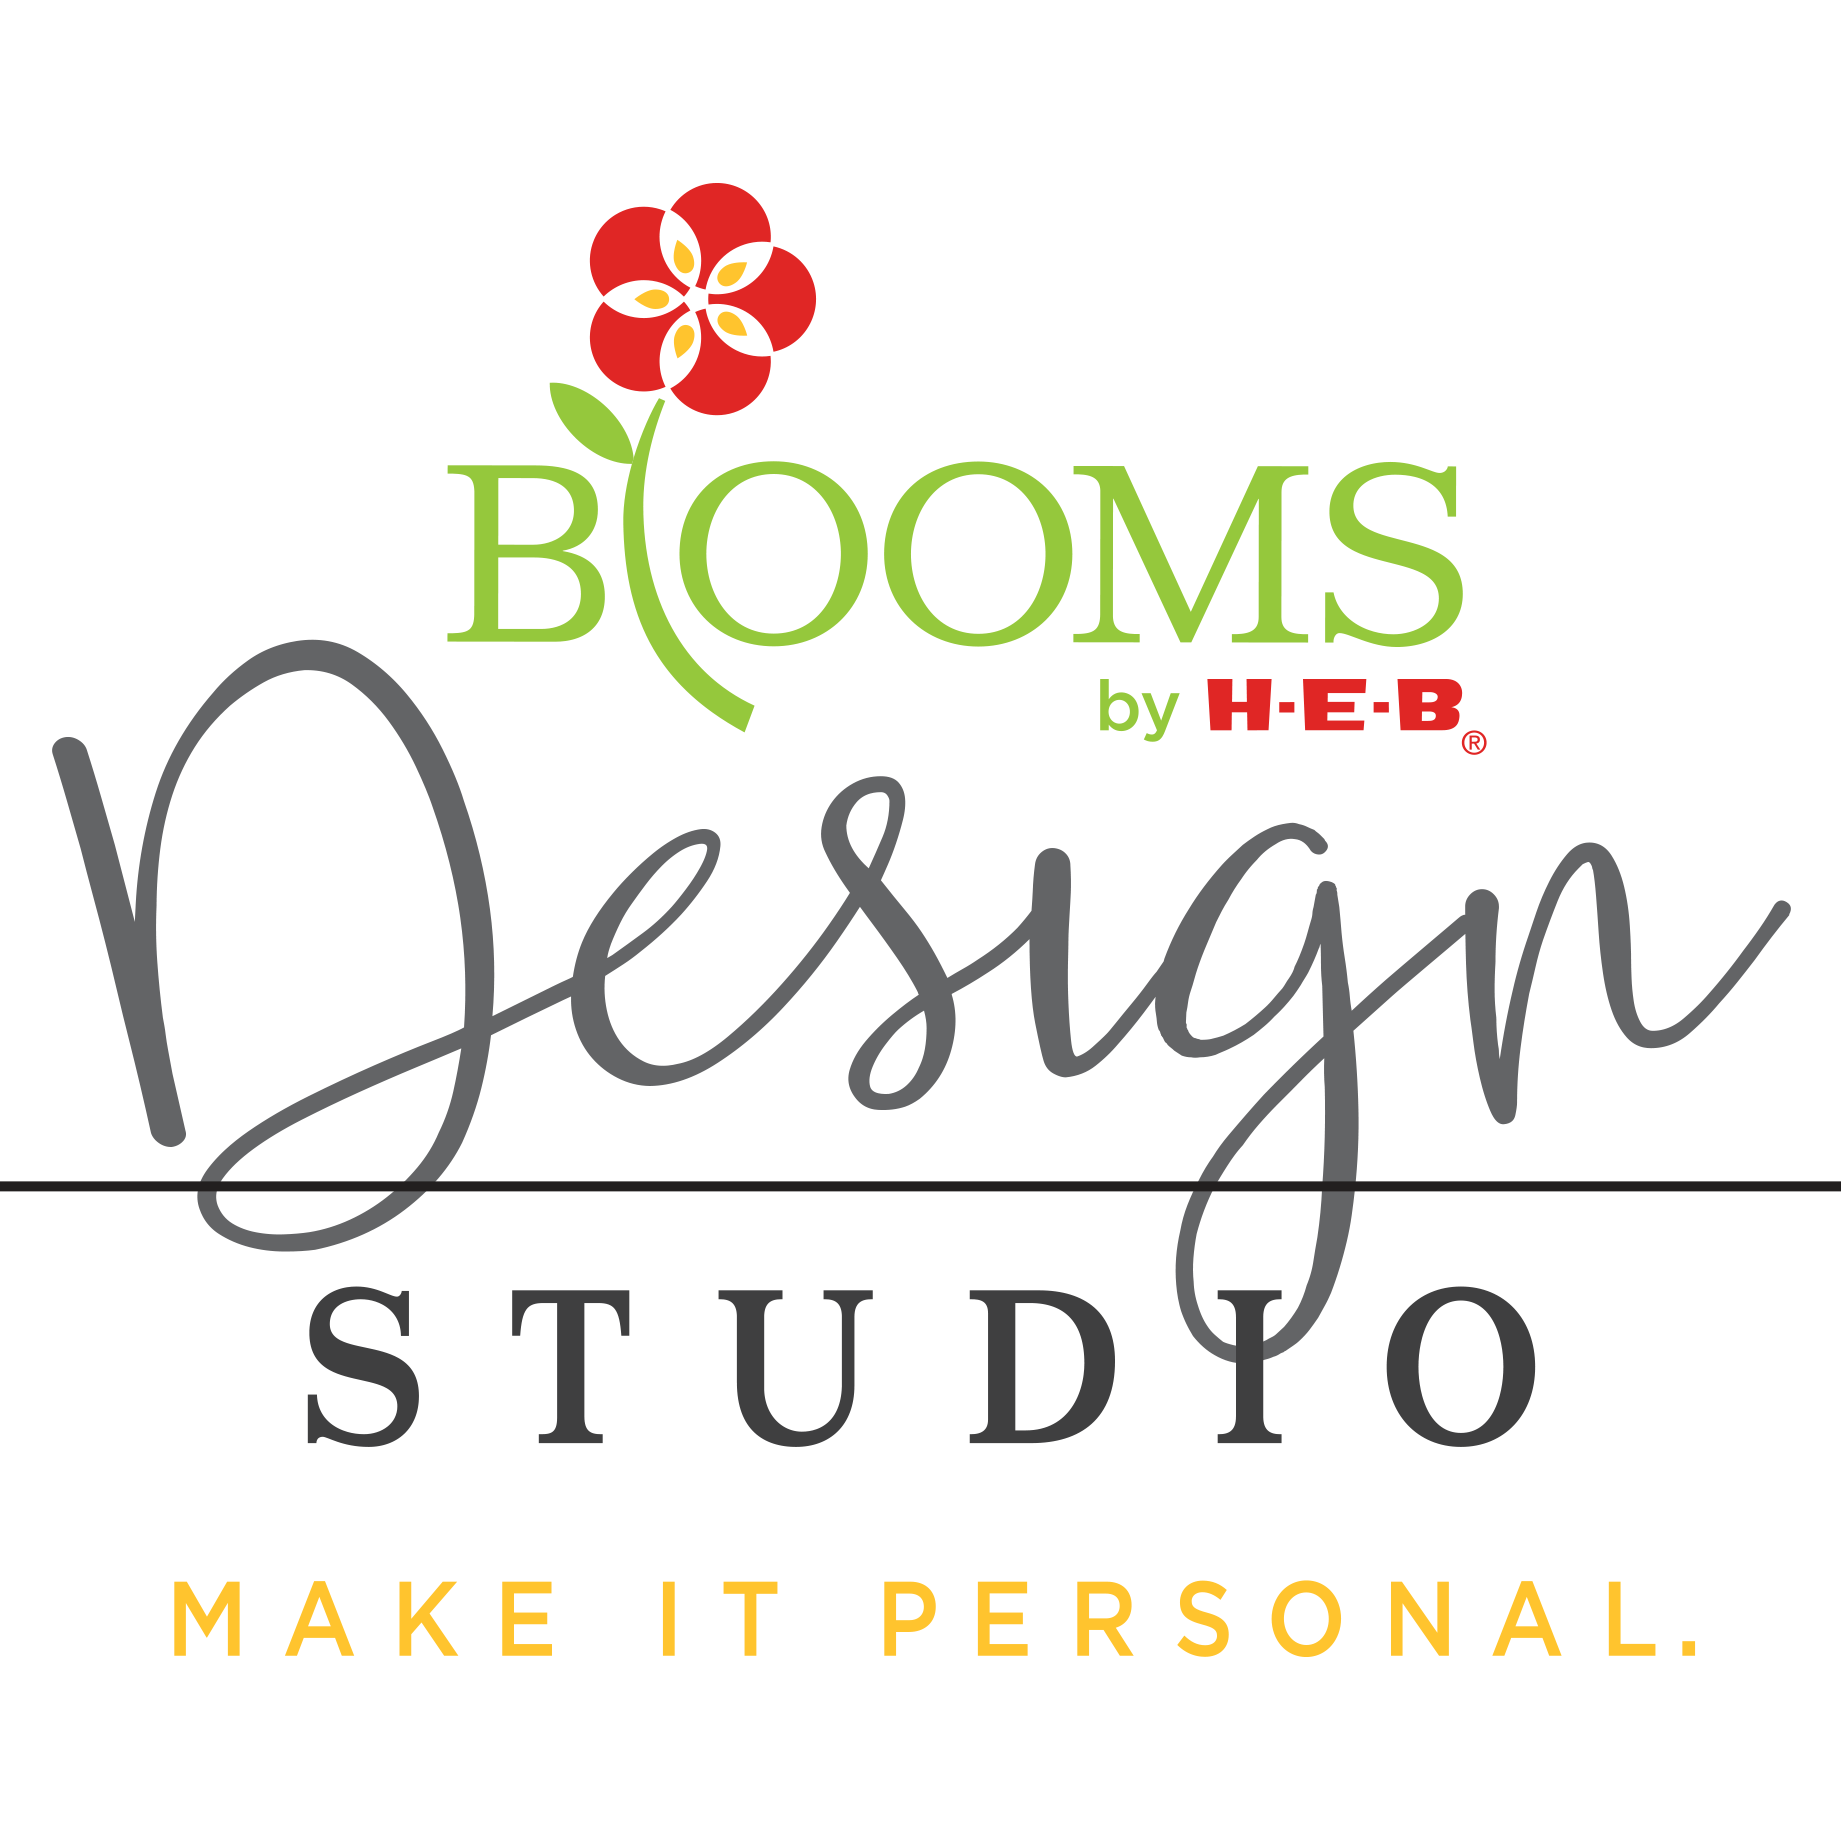 H-E-B Blooms Design Studio